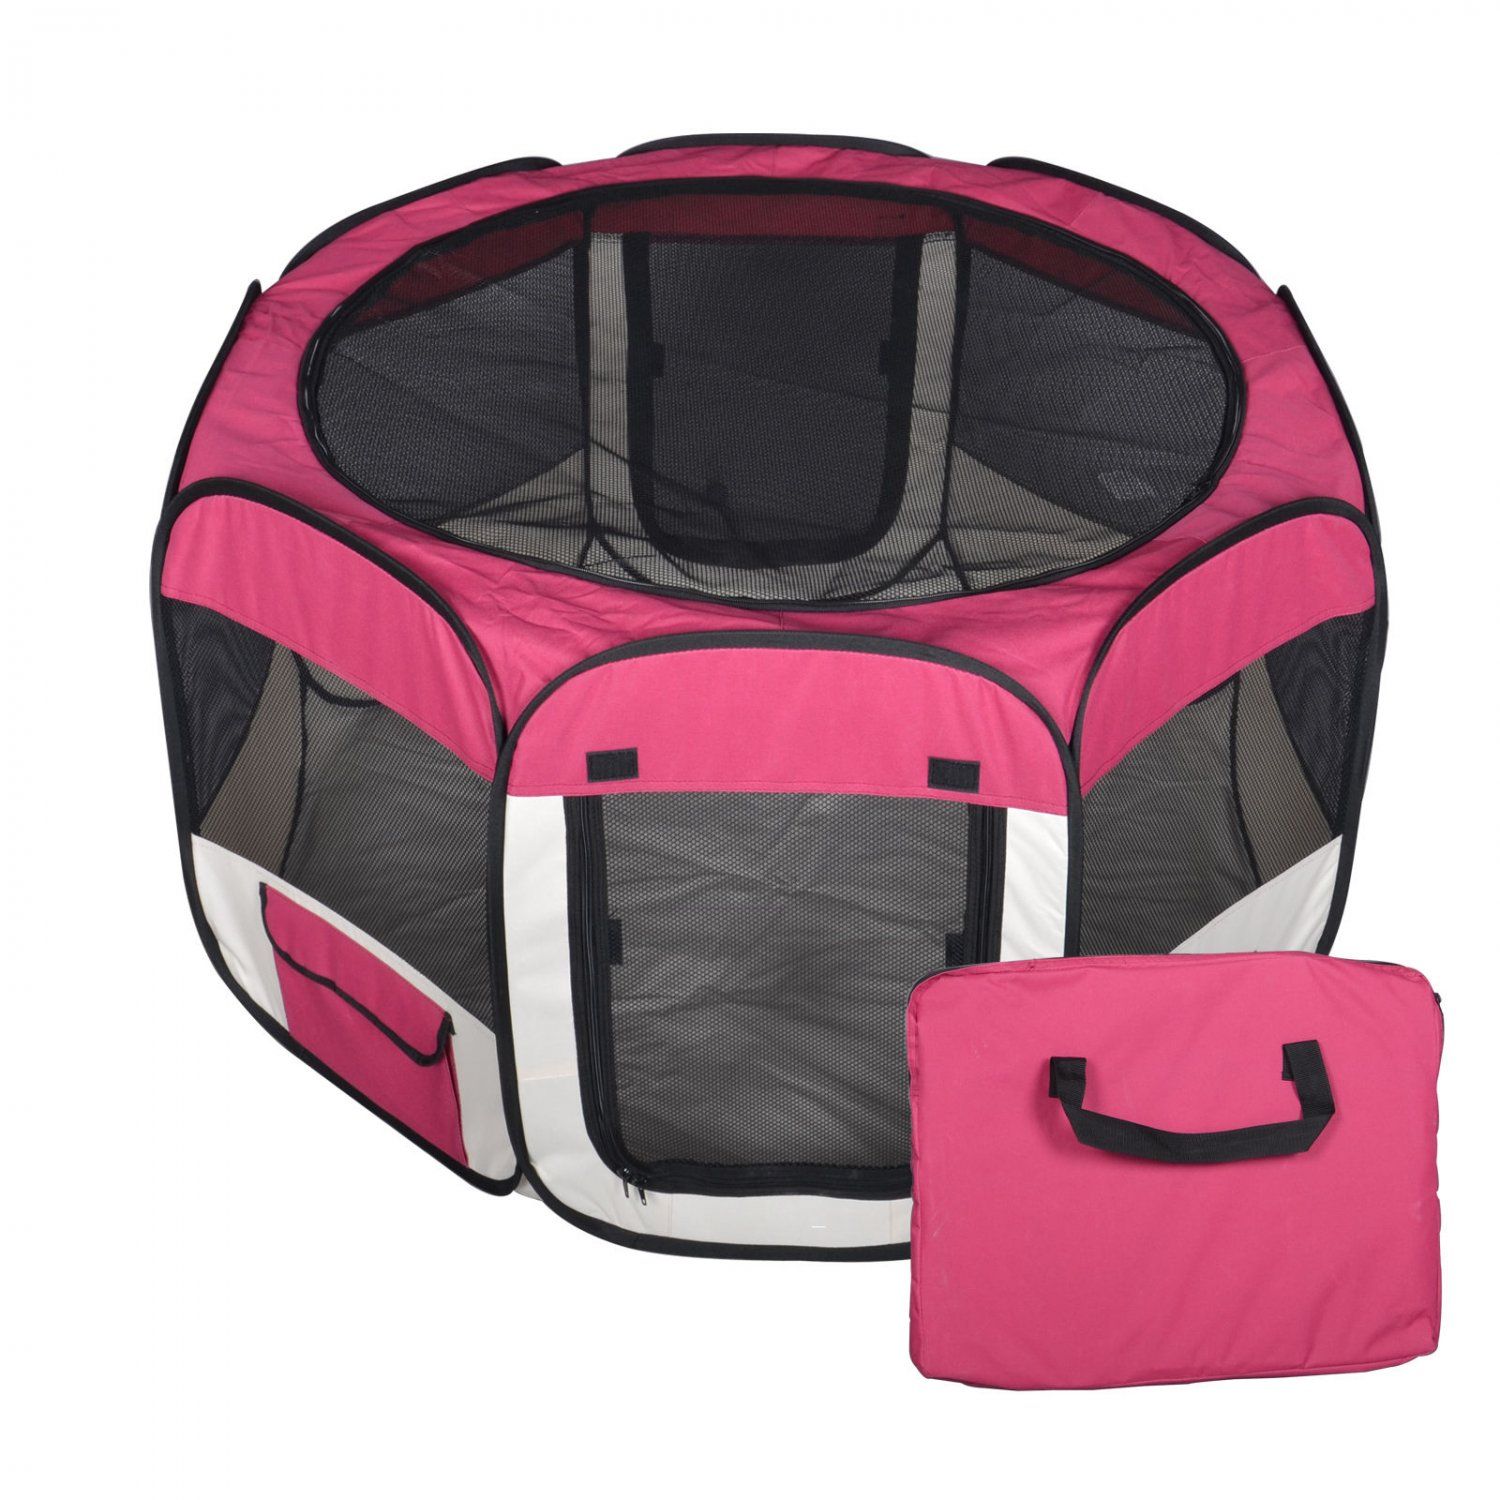 New Small Burgundy Pet Dog Cat Tent Playpen Exercise Play Pen Soft Crate